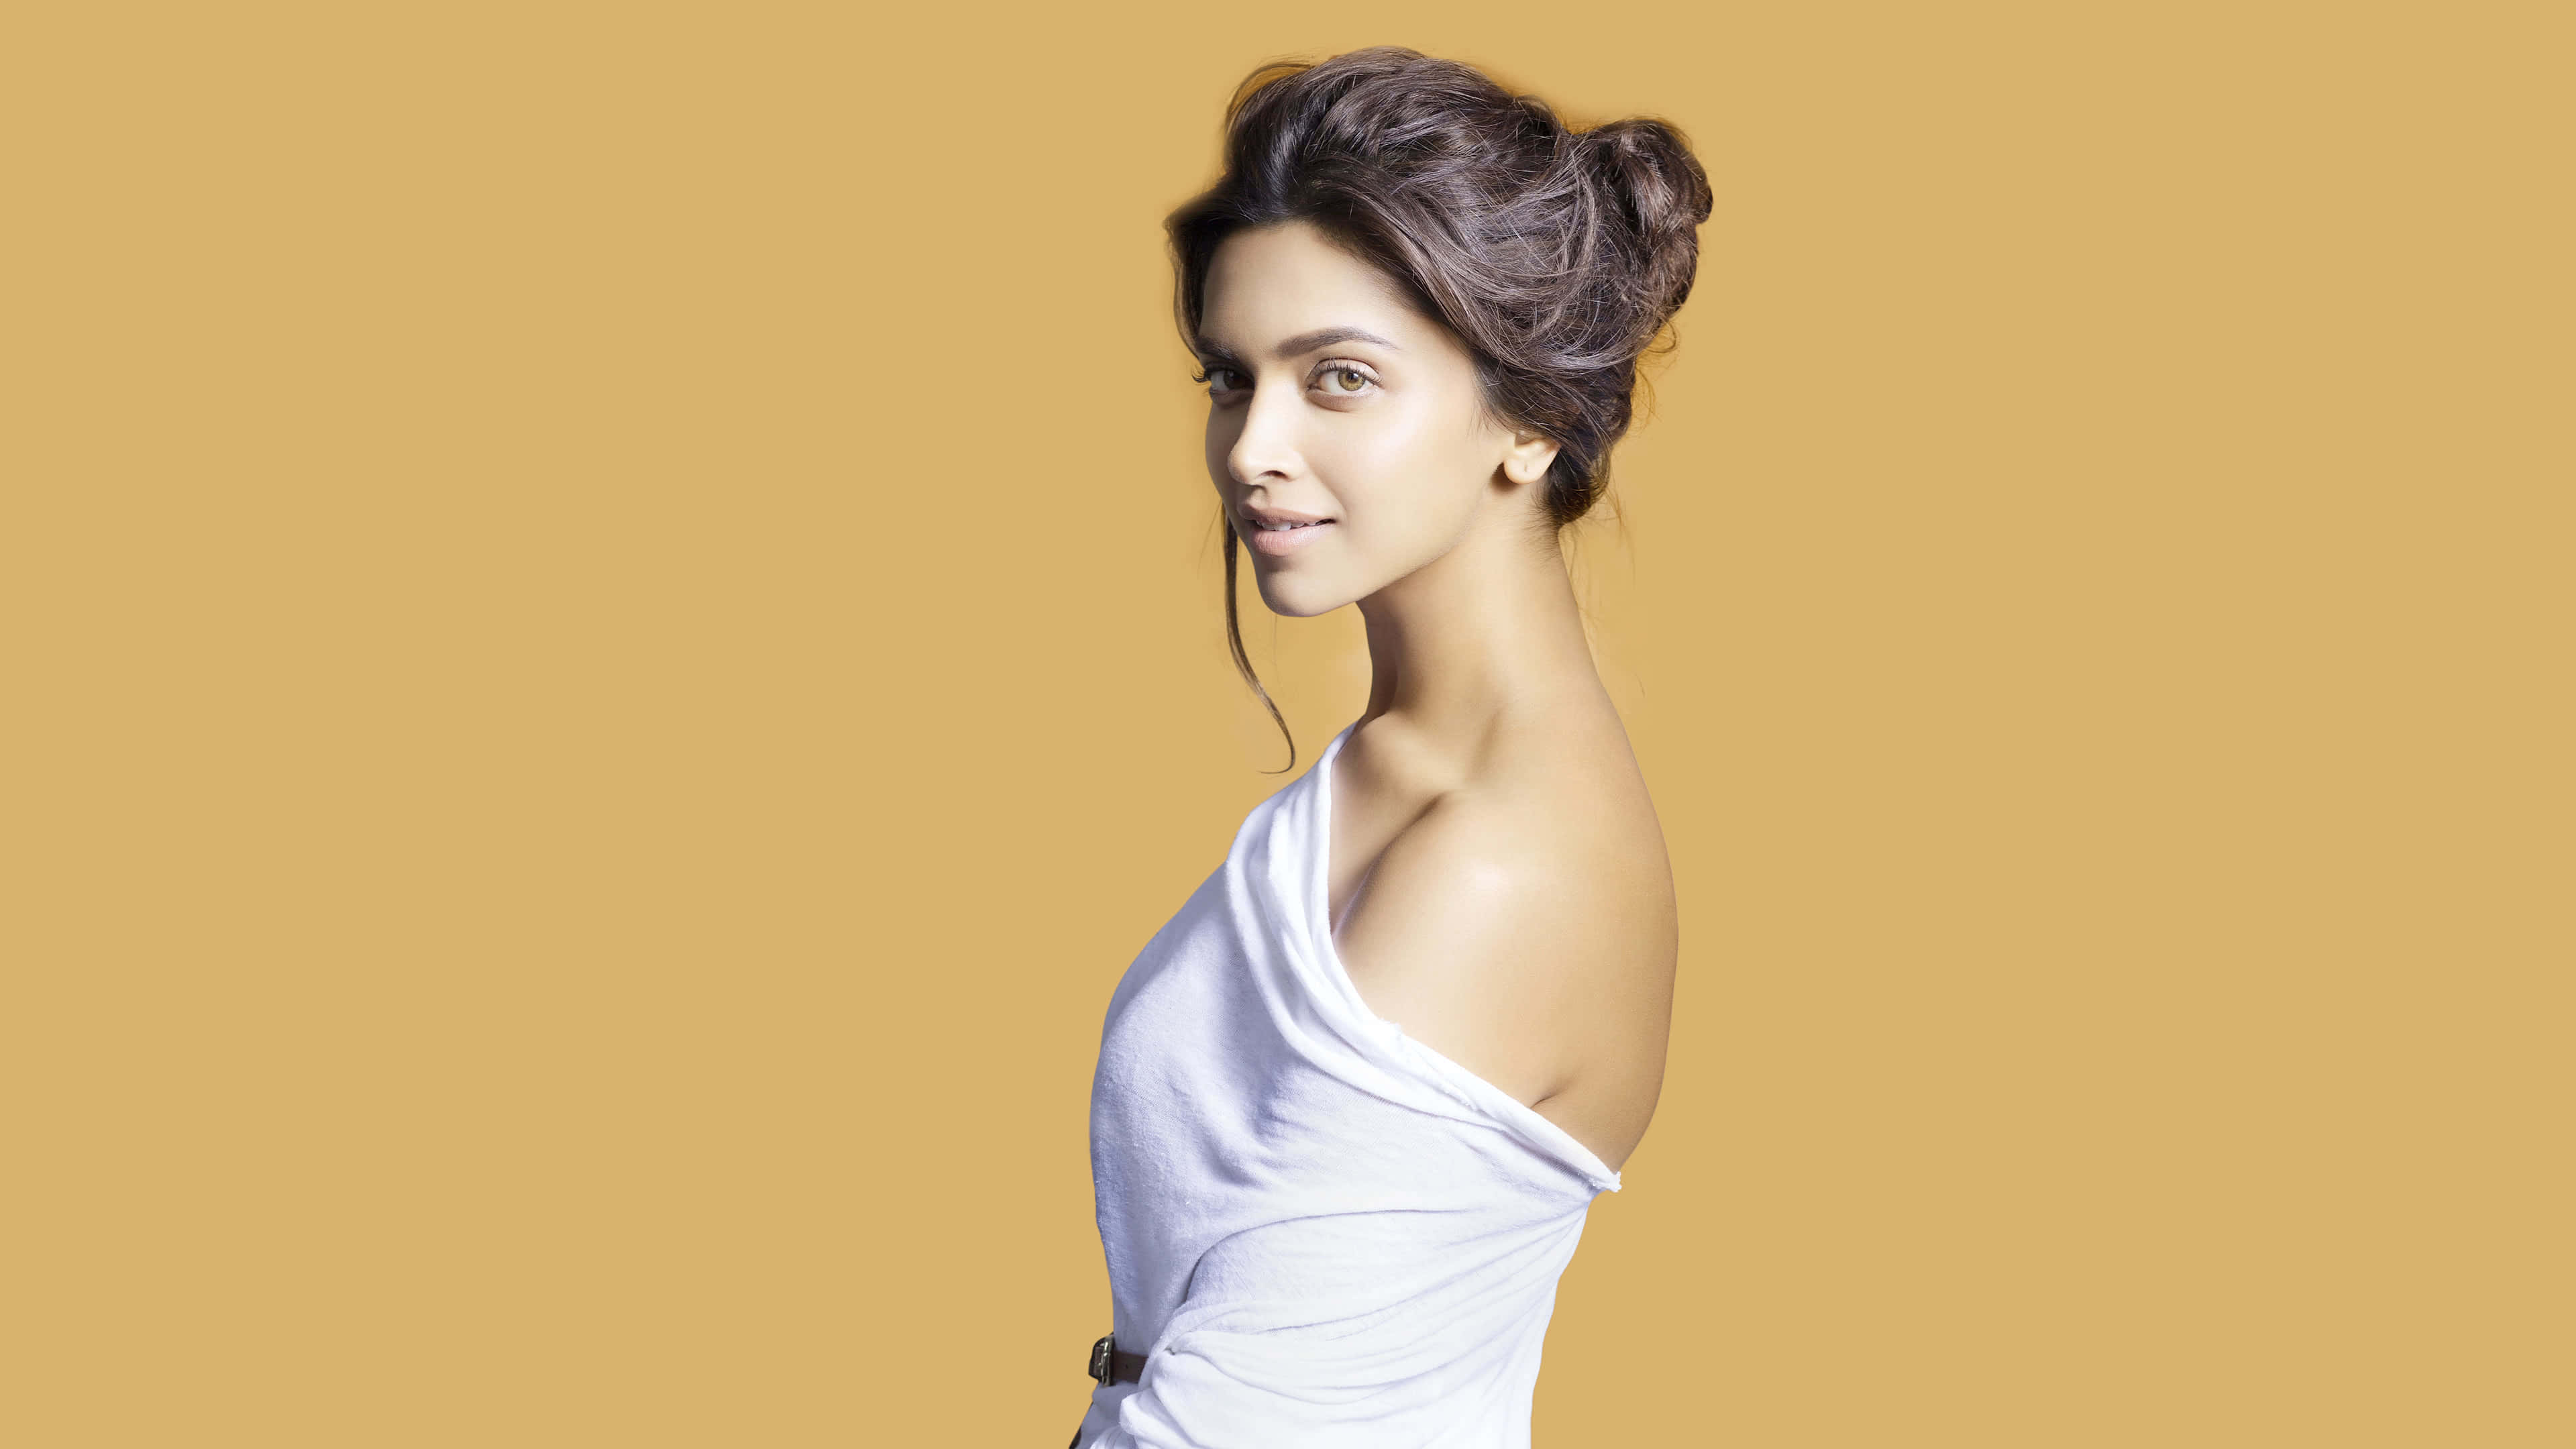 deepika padukone photoshoot uhd 4k wallpaper